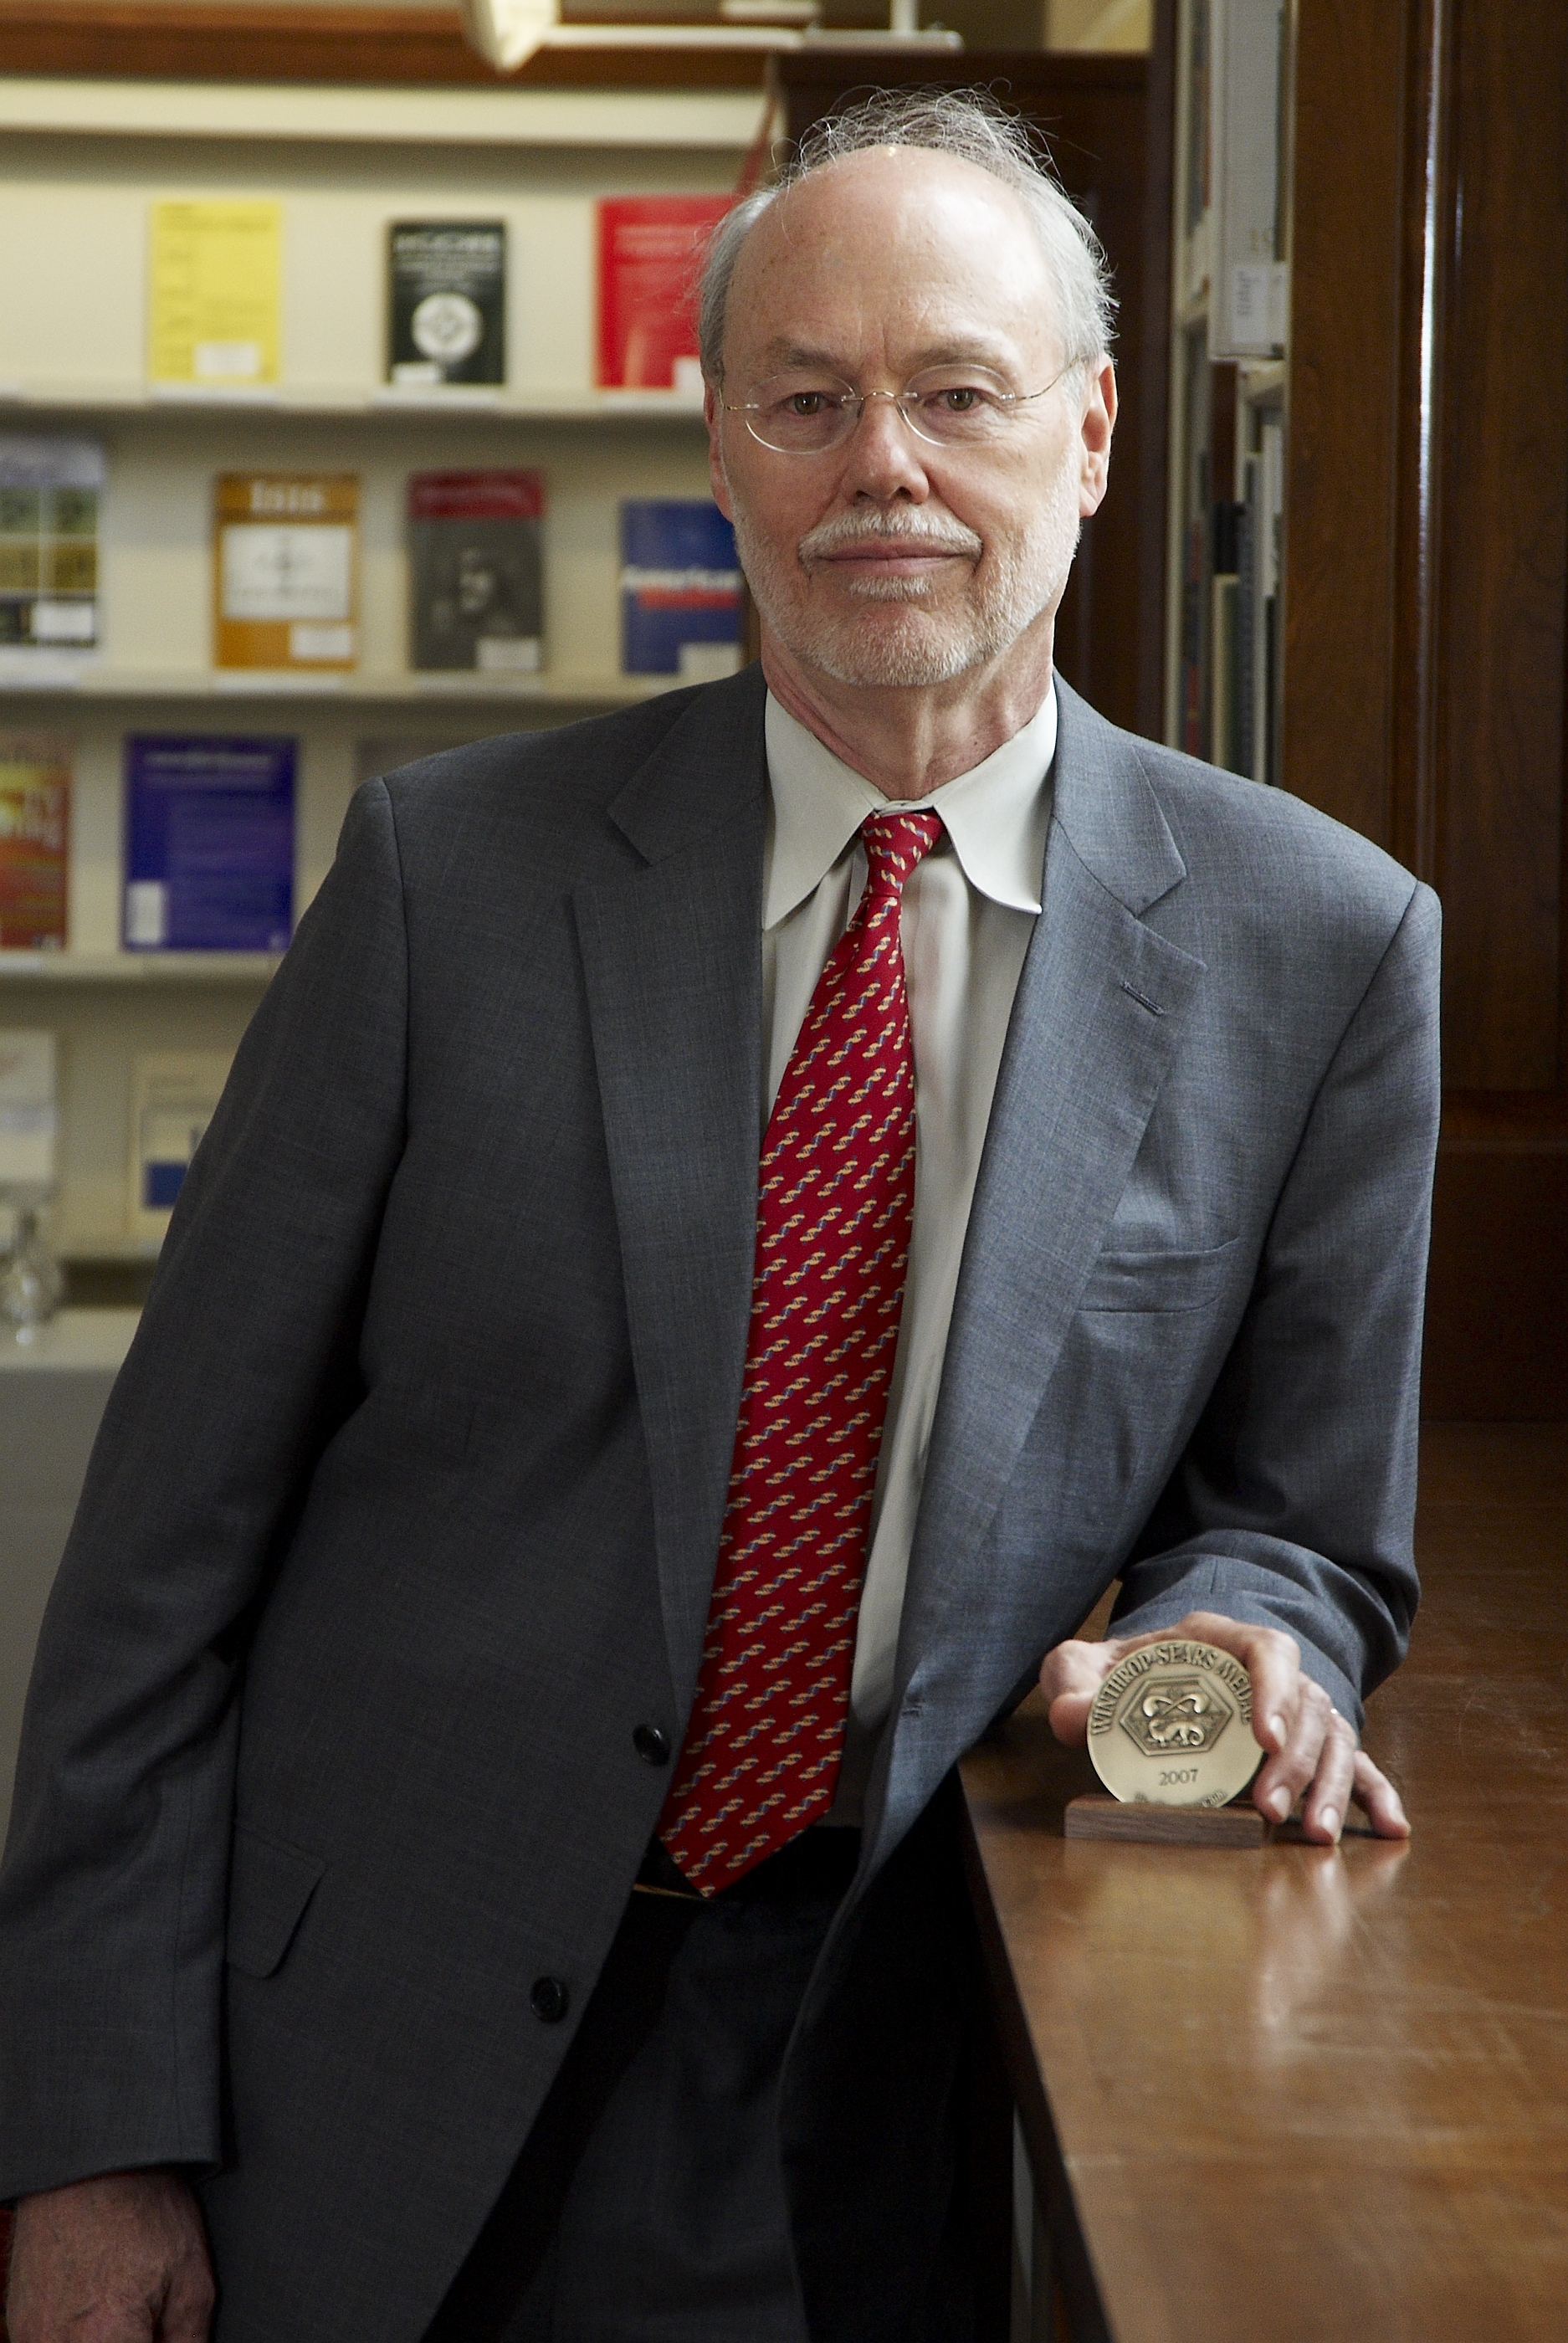 With [[Winthrop-Sears Medal]], 2007